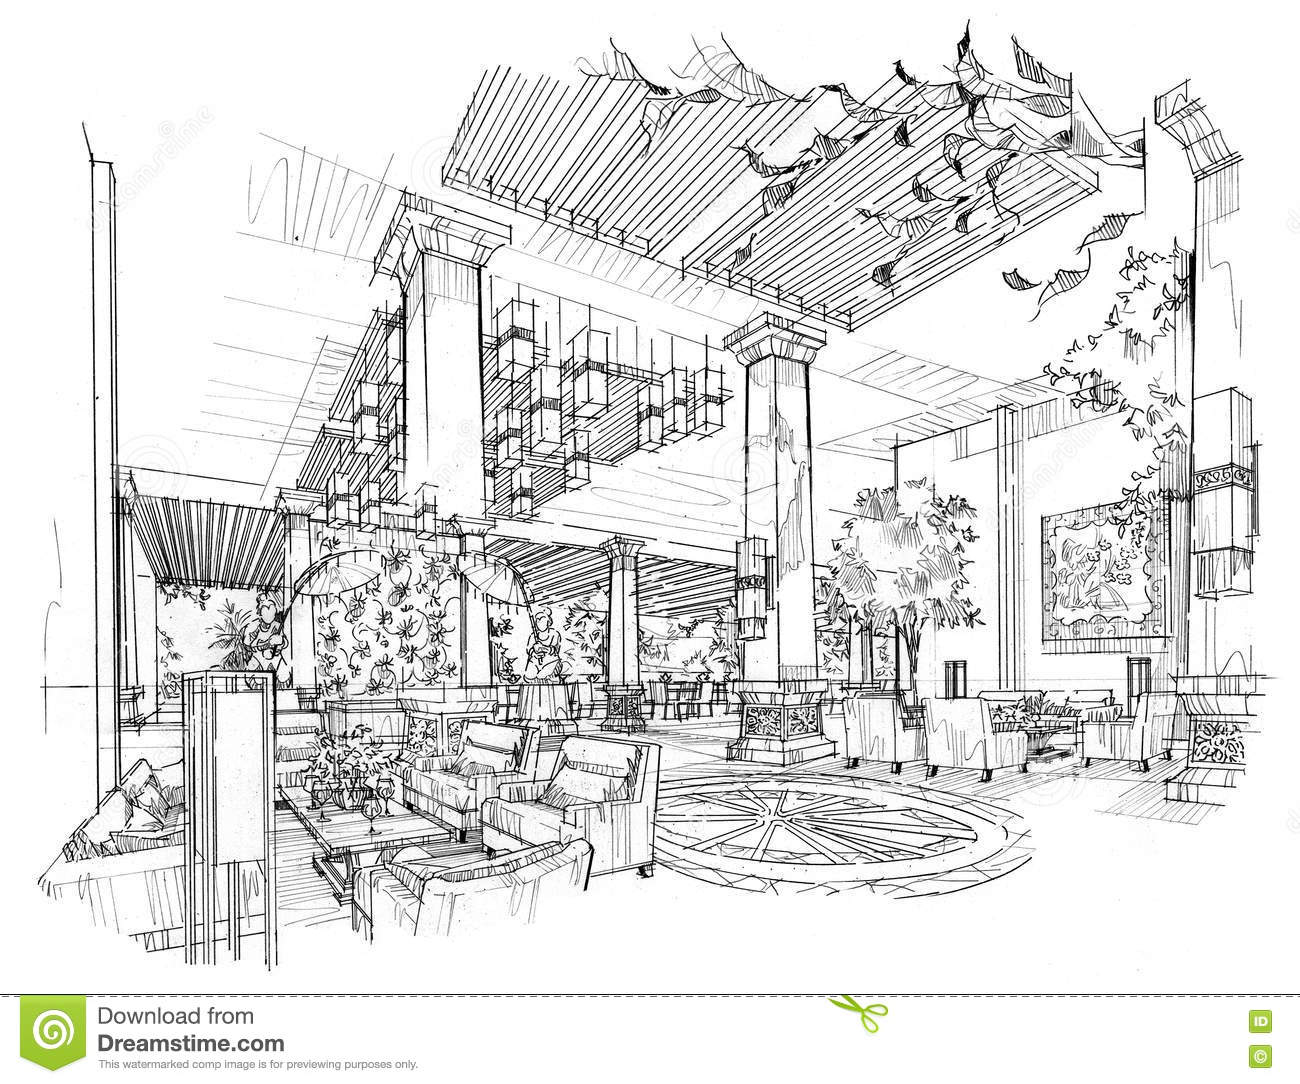 Sketch Interior Perspective Lobby Hall, Black And White Interior Design.